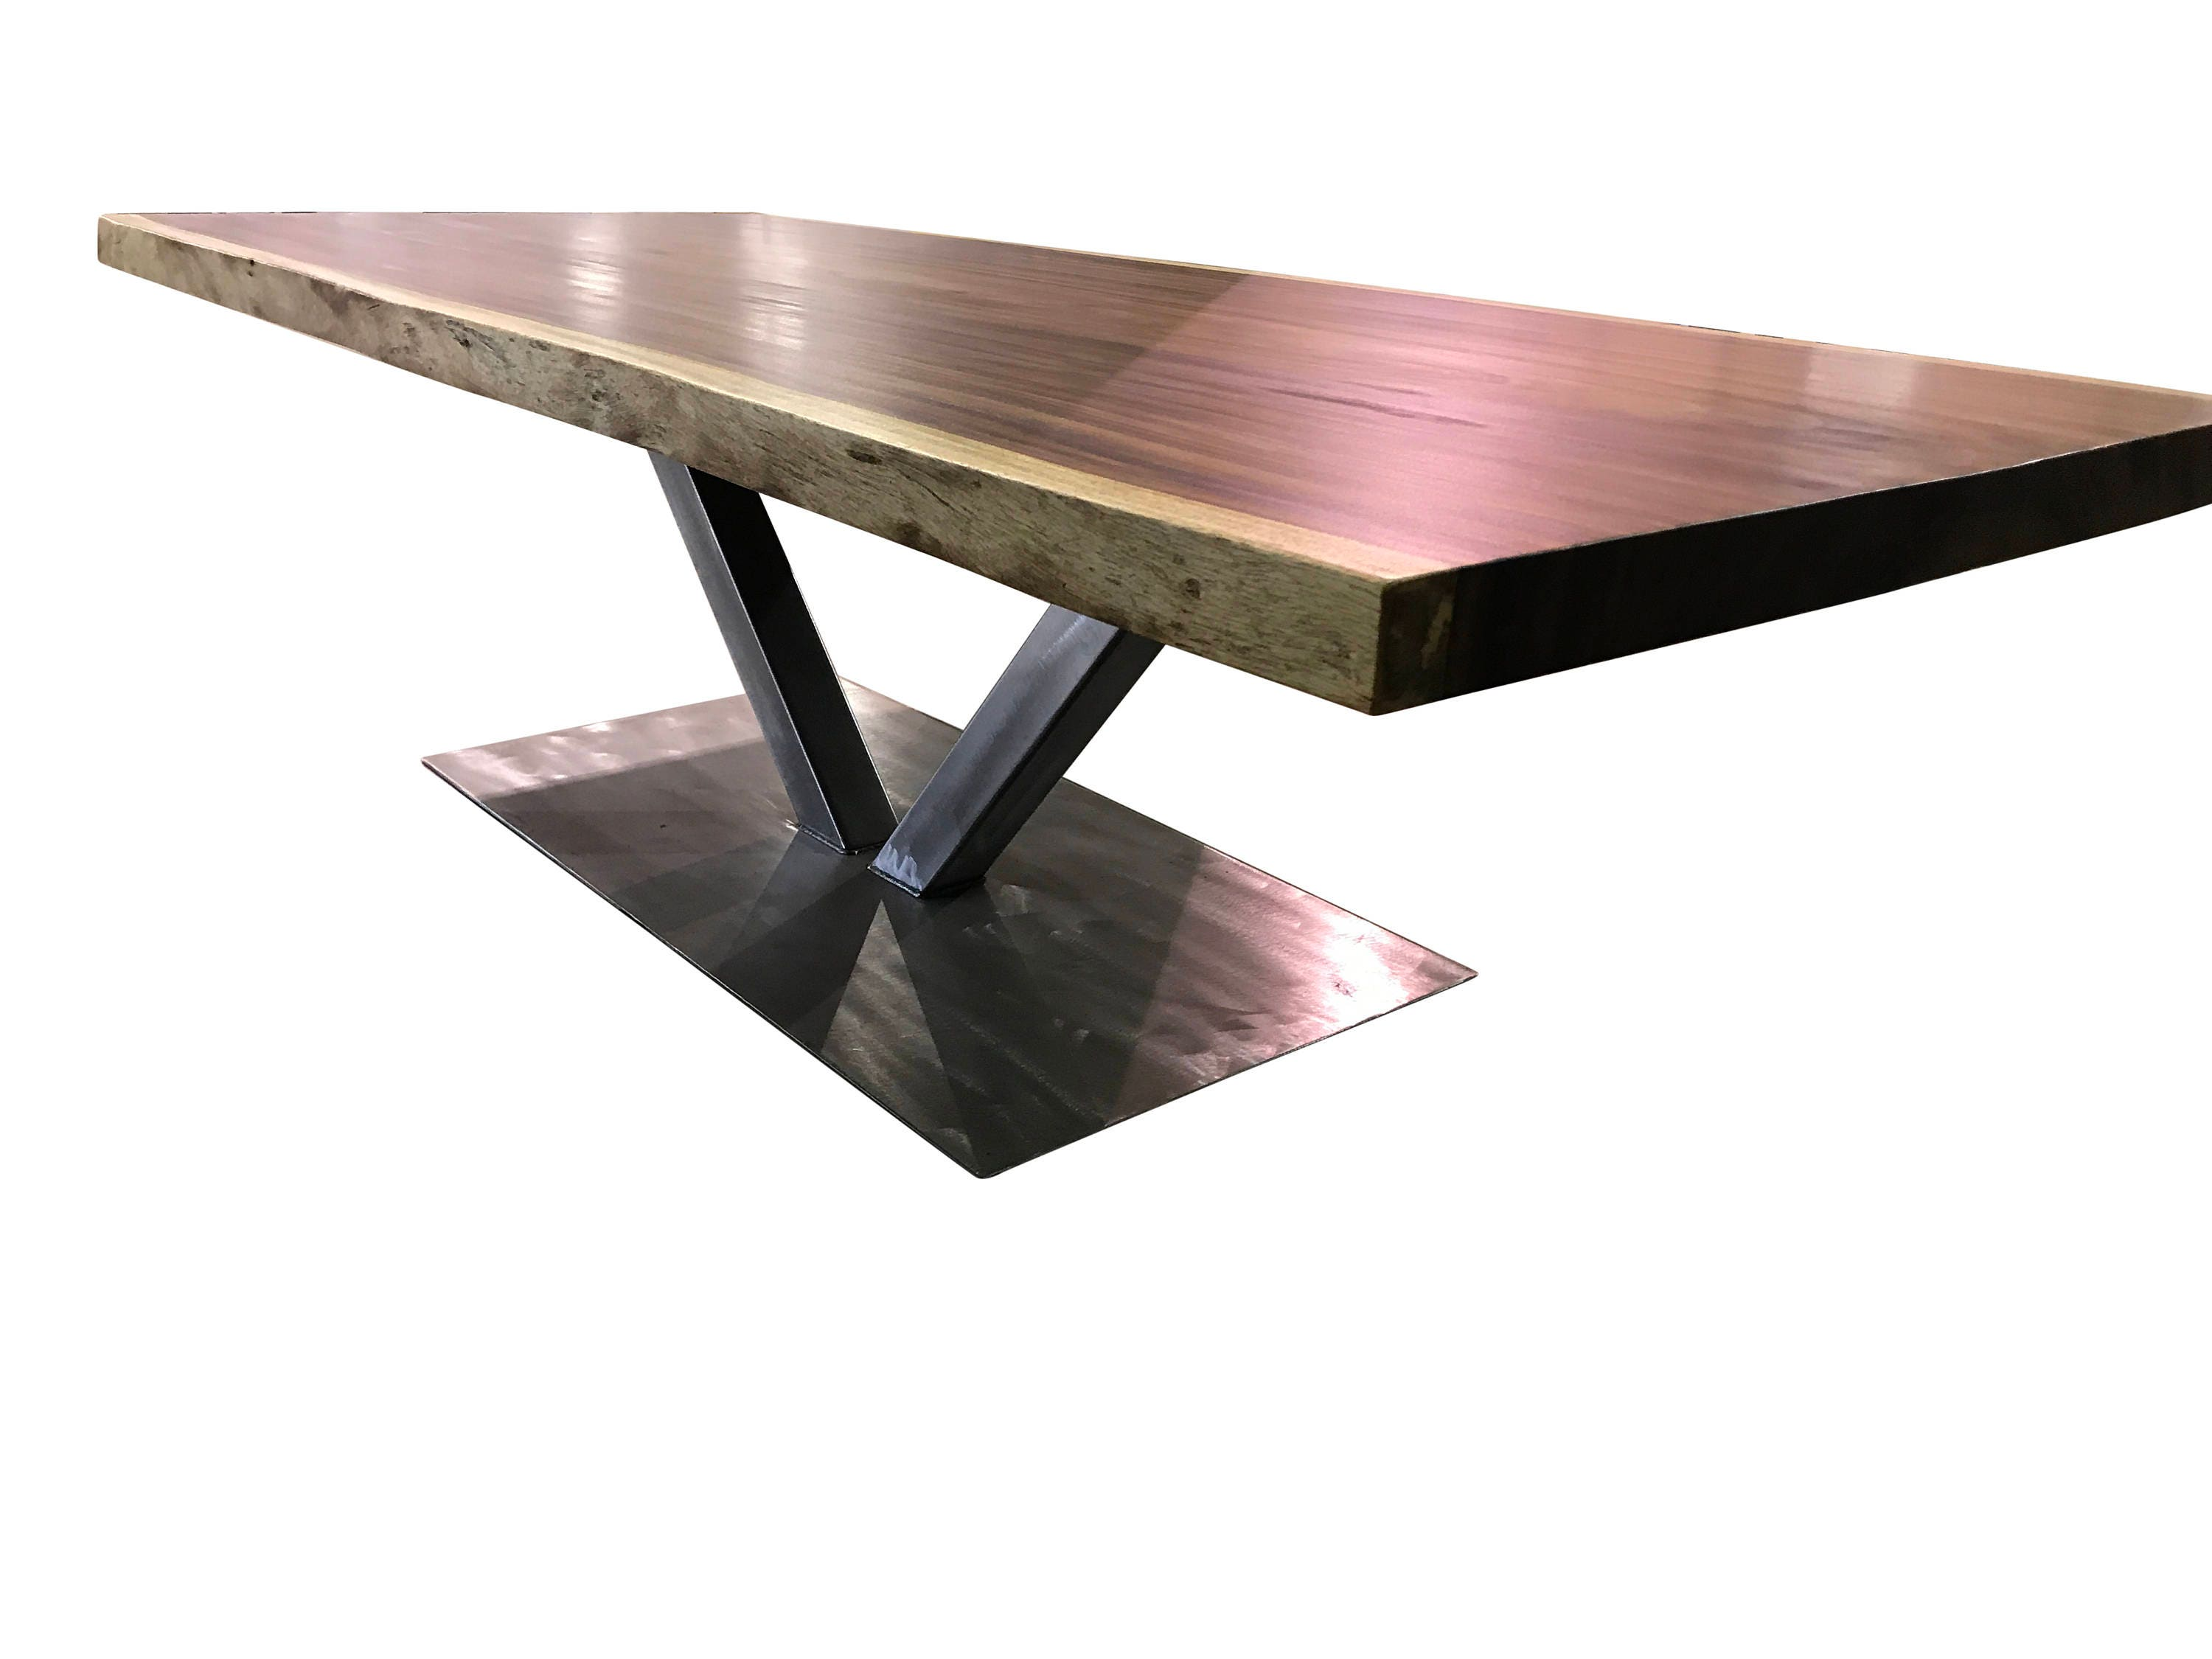 edge organic shipping overstock garden free live table dining home today product